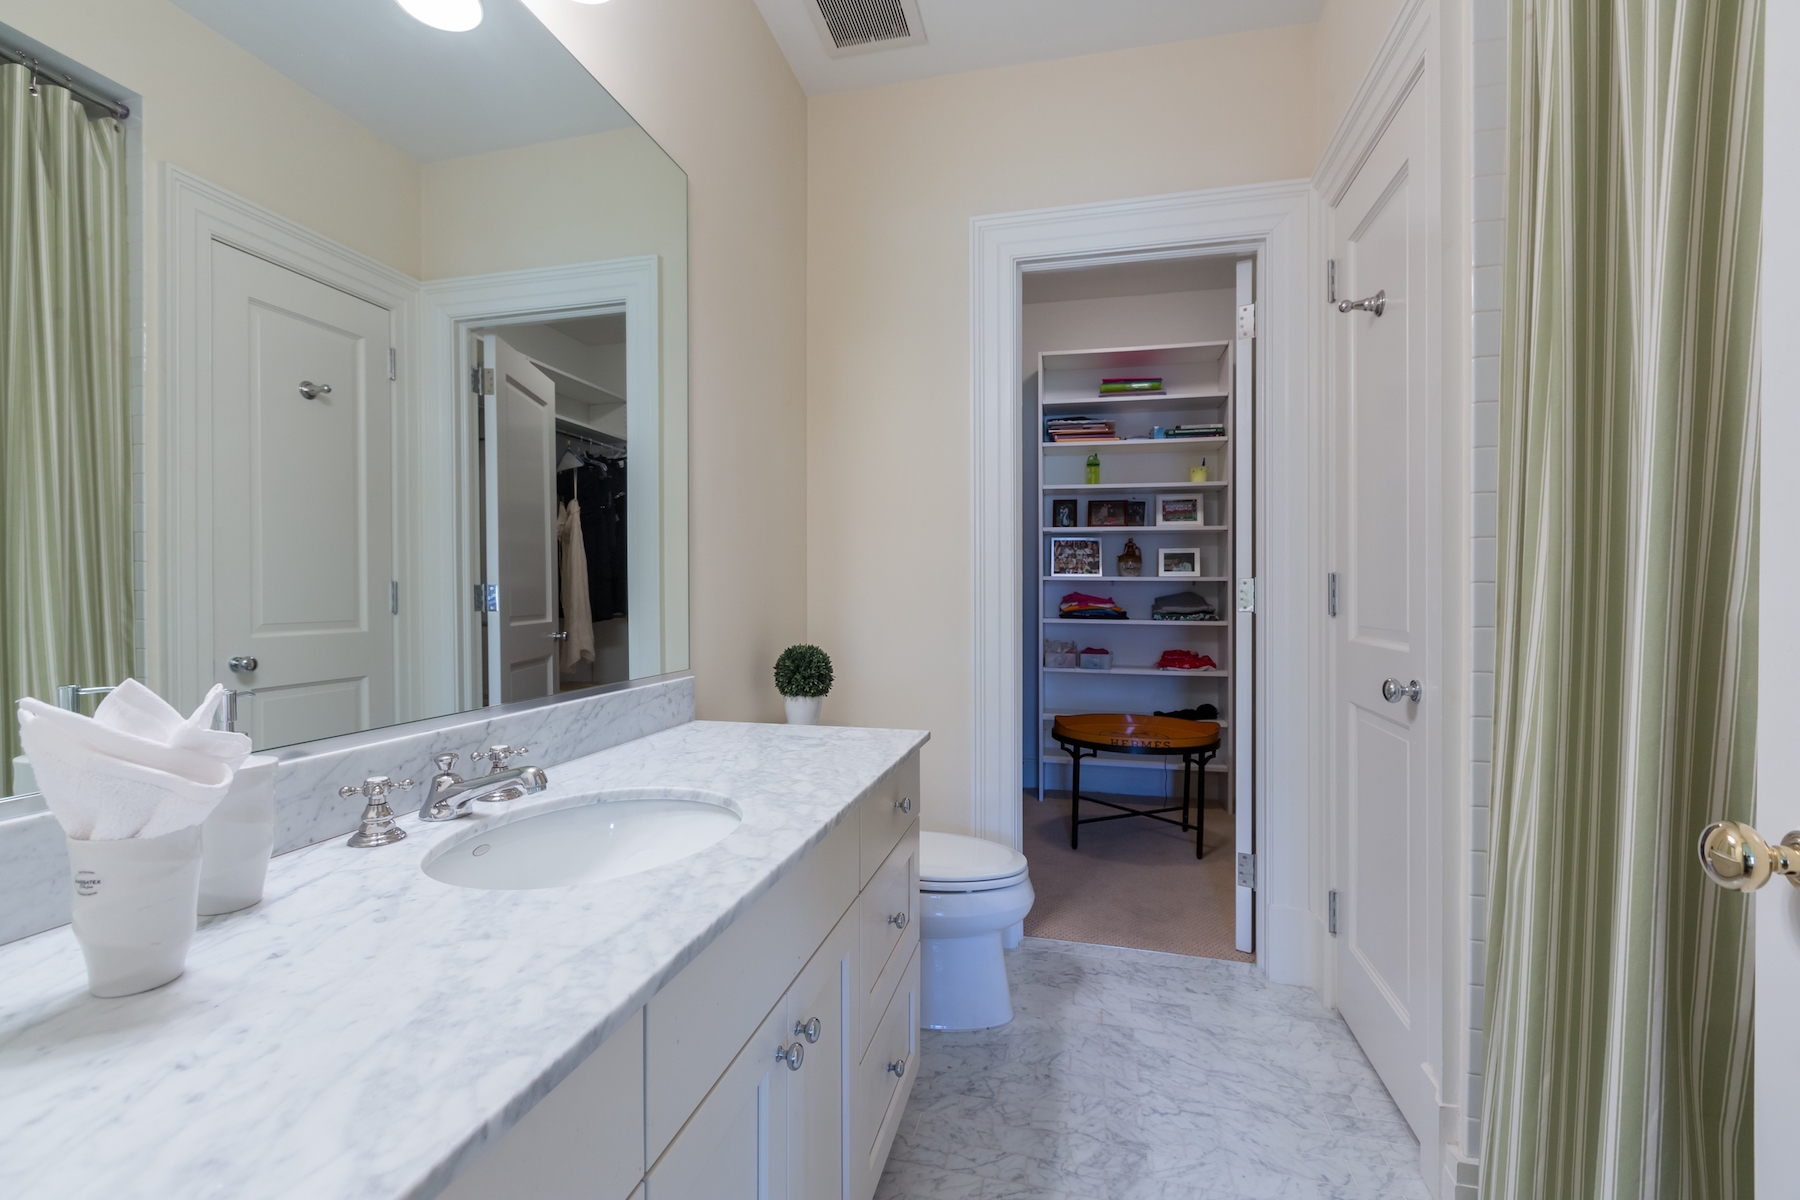 Additional photo for property listing at Woodley Park 2735 Cathedral Avenue Nw Washington, District Of Columbia 20008 United States